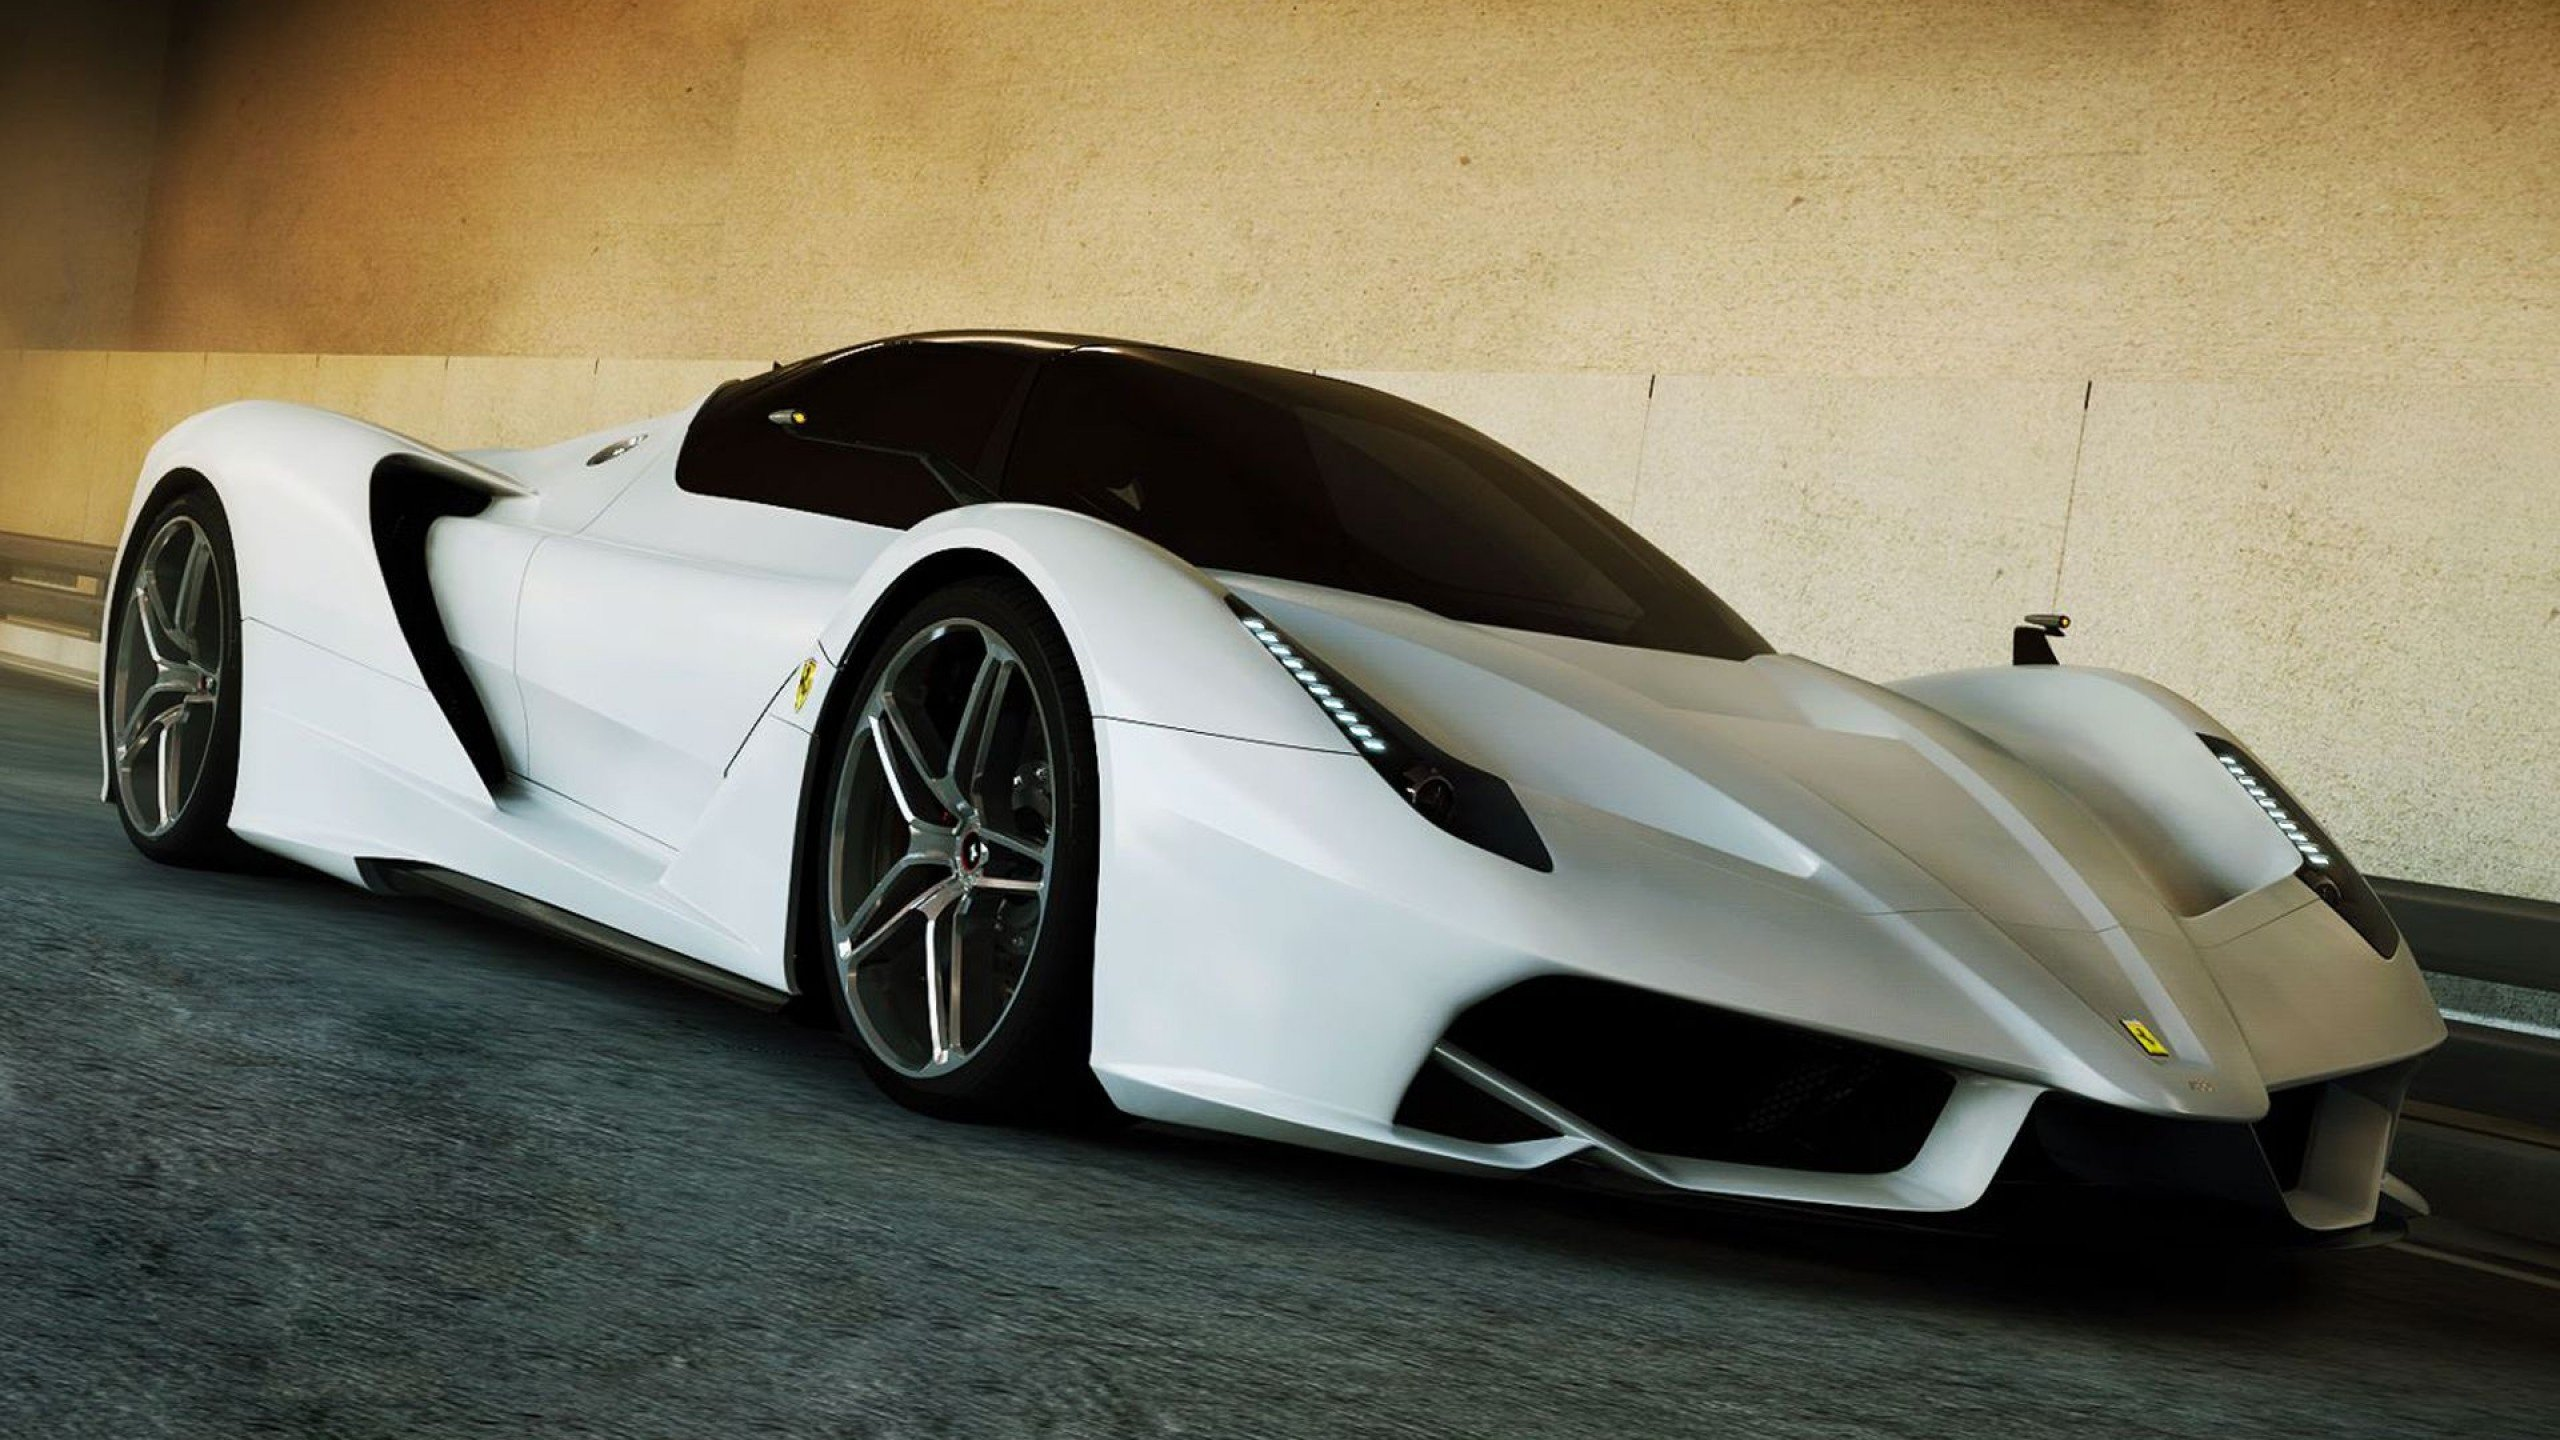 Wallpapers backgrounds for desktop Ferrari cars wallpapers are 2560x1440